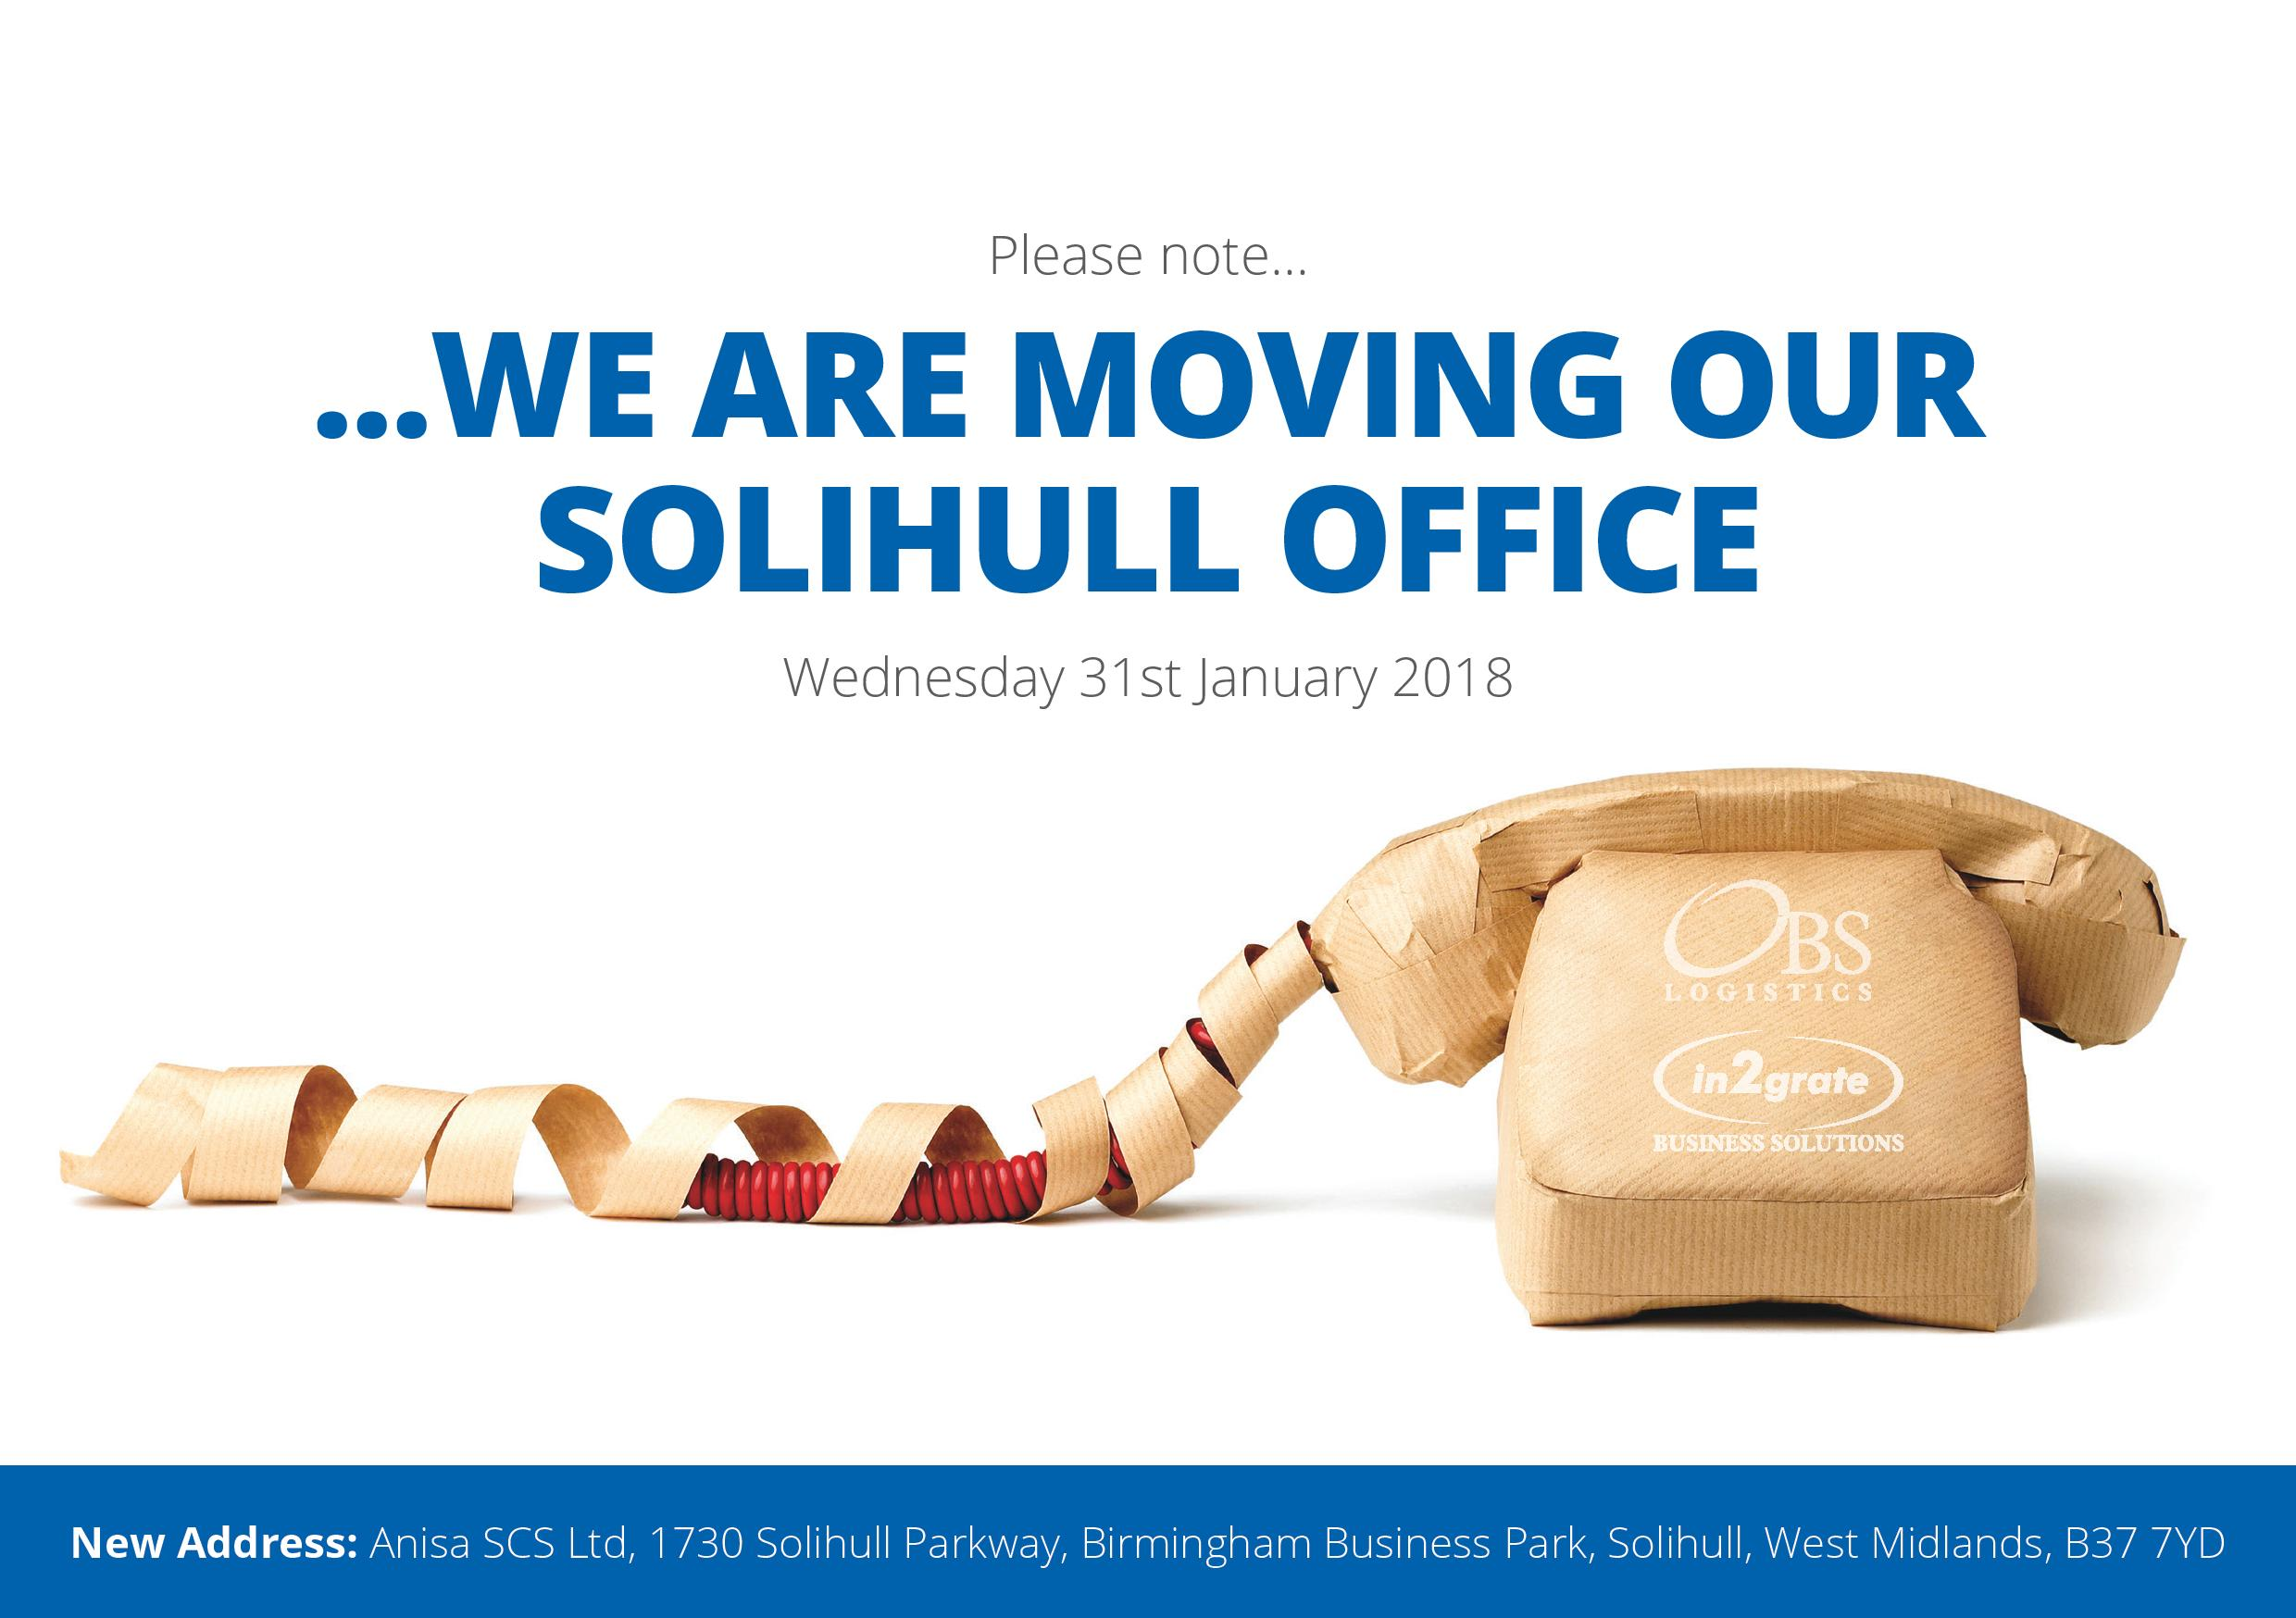 In2grate have Moved their Solihull office